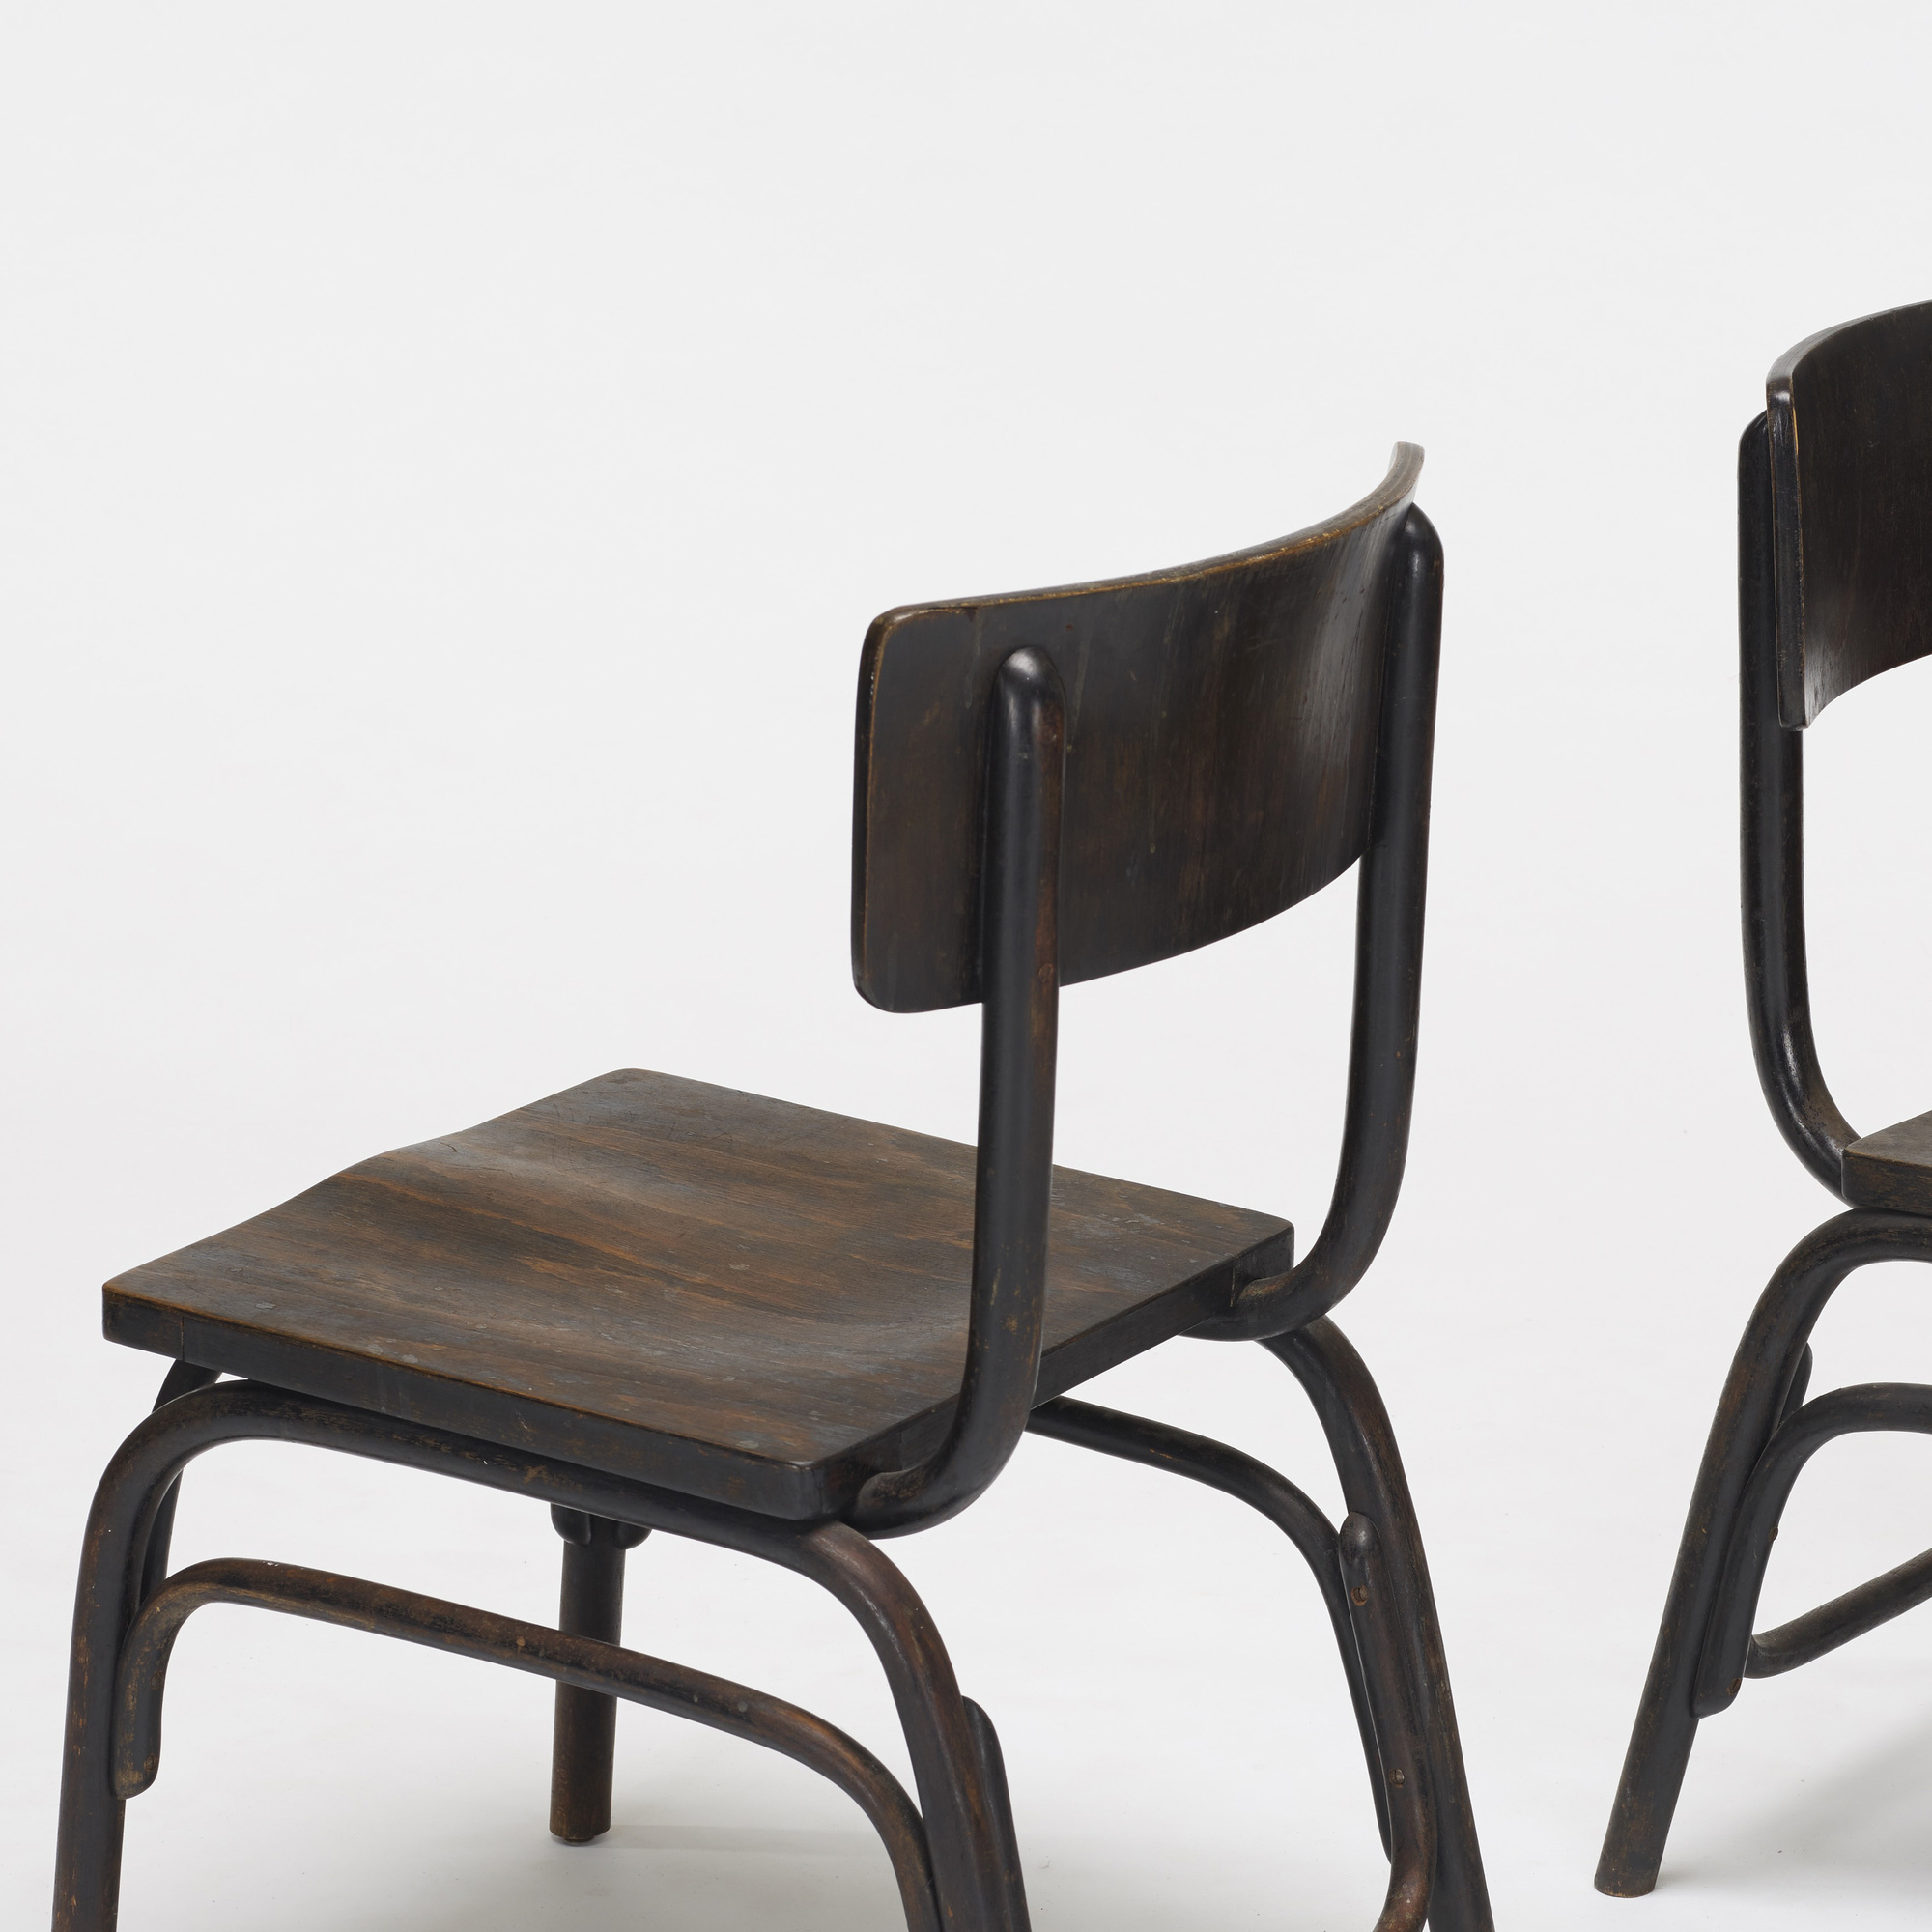 Ferdinand Kramer 114 ferdinand kramer chairs model b403 pair living contemporary